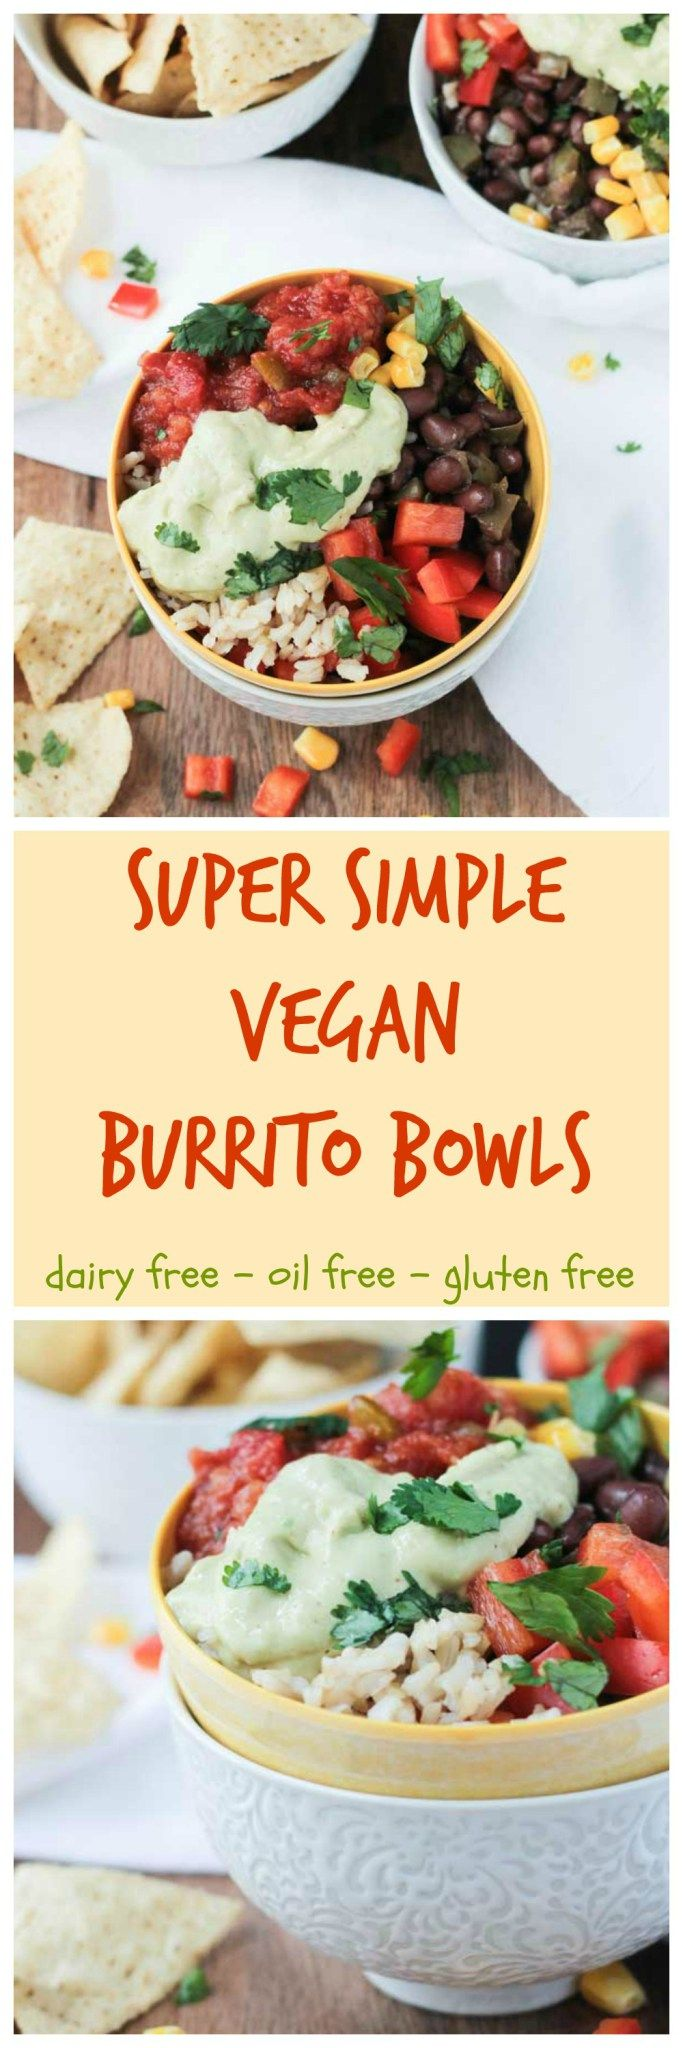 Super Simple Vegan Burrito Bowl